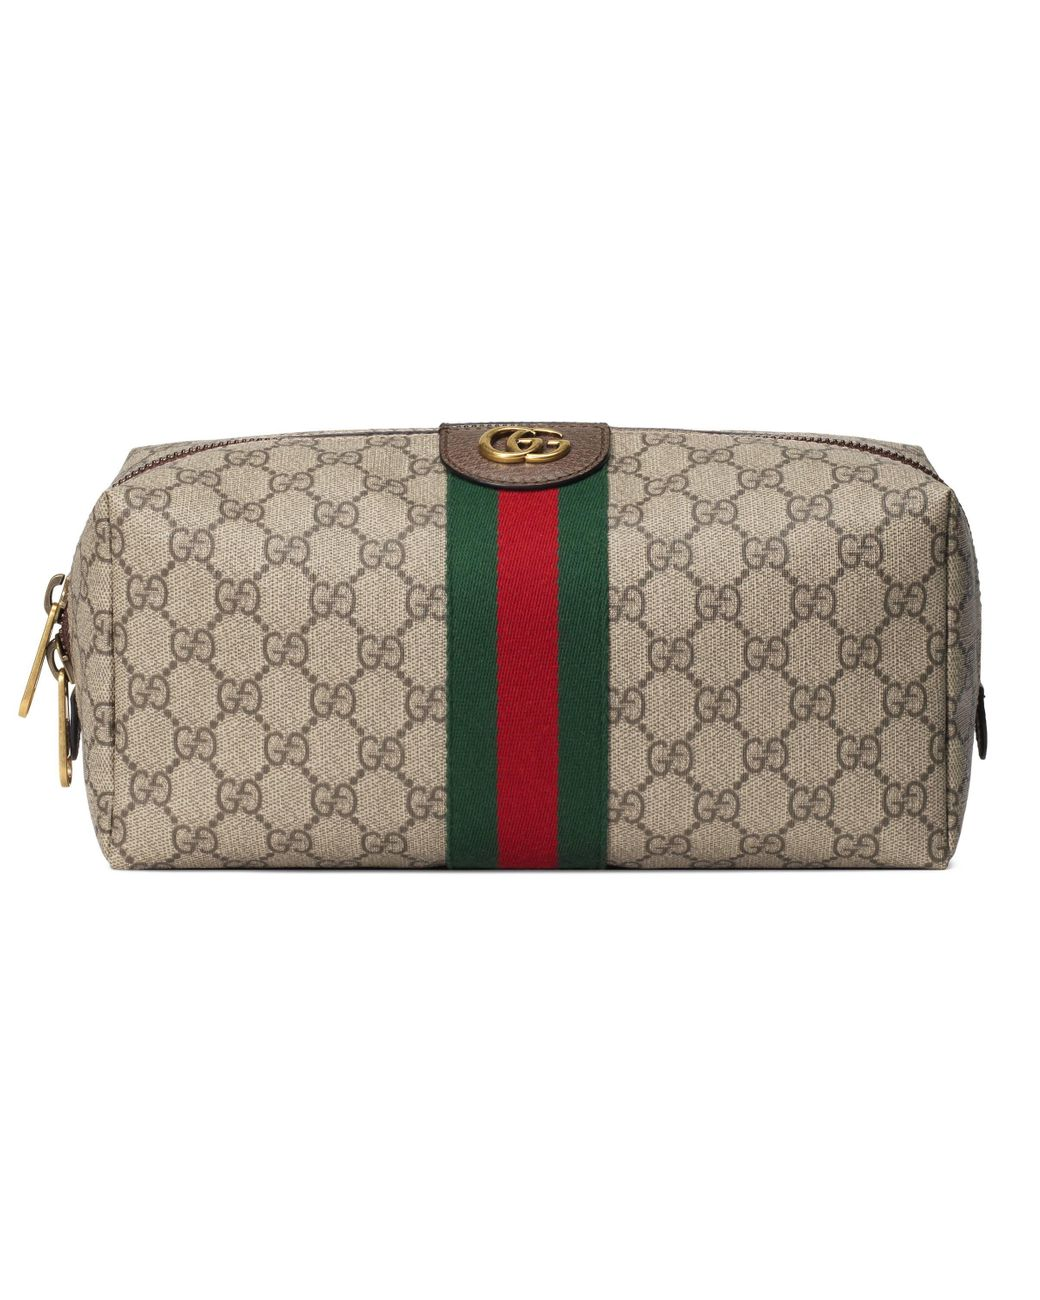 Gucci Synthetic Ophidia Gg Toiletry Case In Beige Natural For Men Lyst